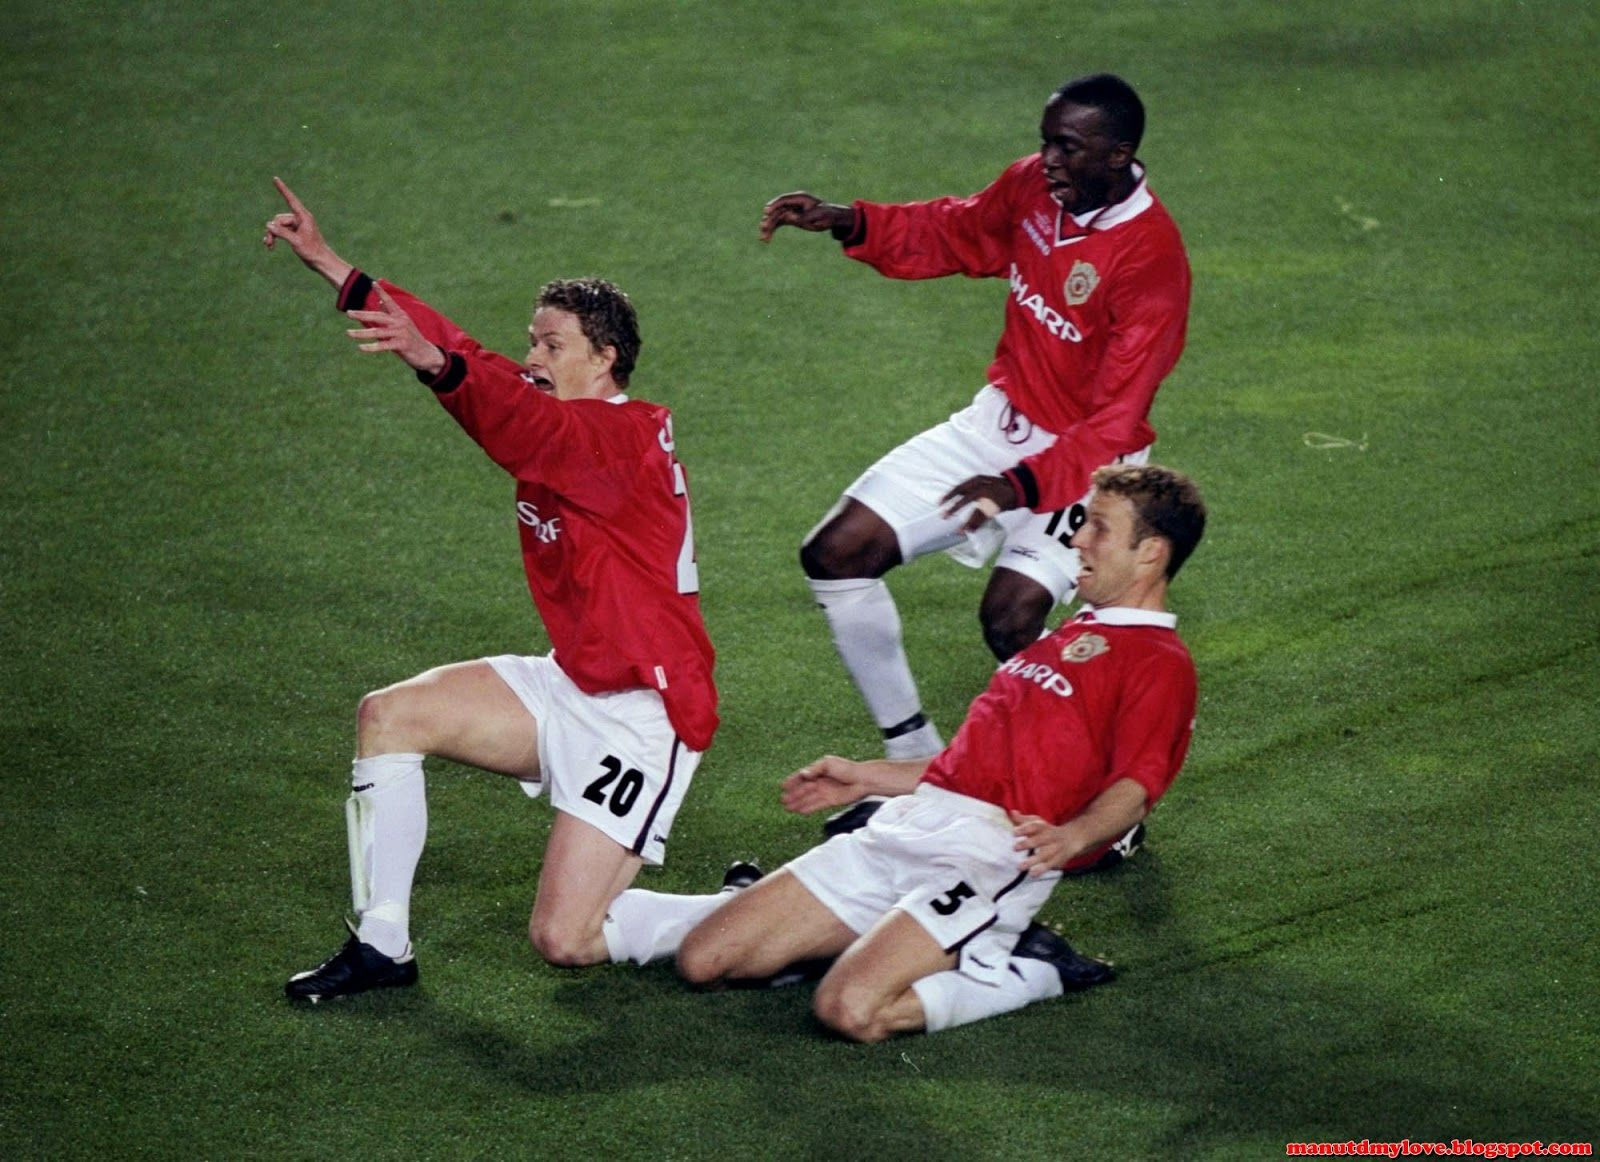 Manchester United Celebrate Winning The C1 1998 1999 Manchester United My Love Manchester United Manchester United Football The Unit